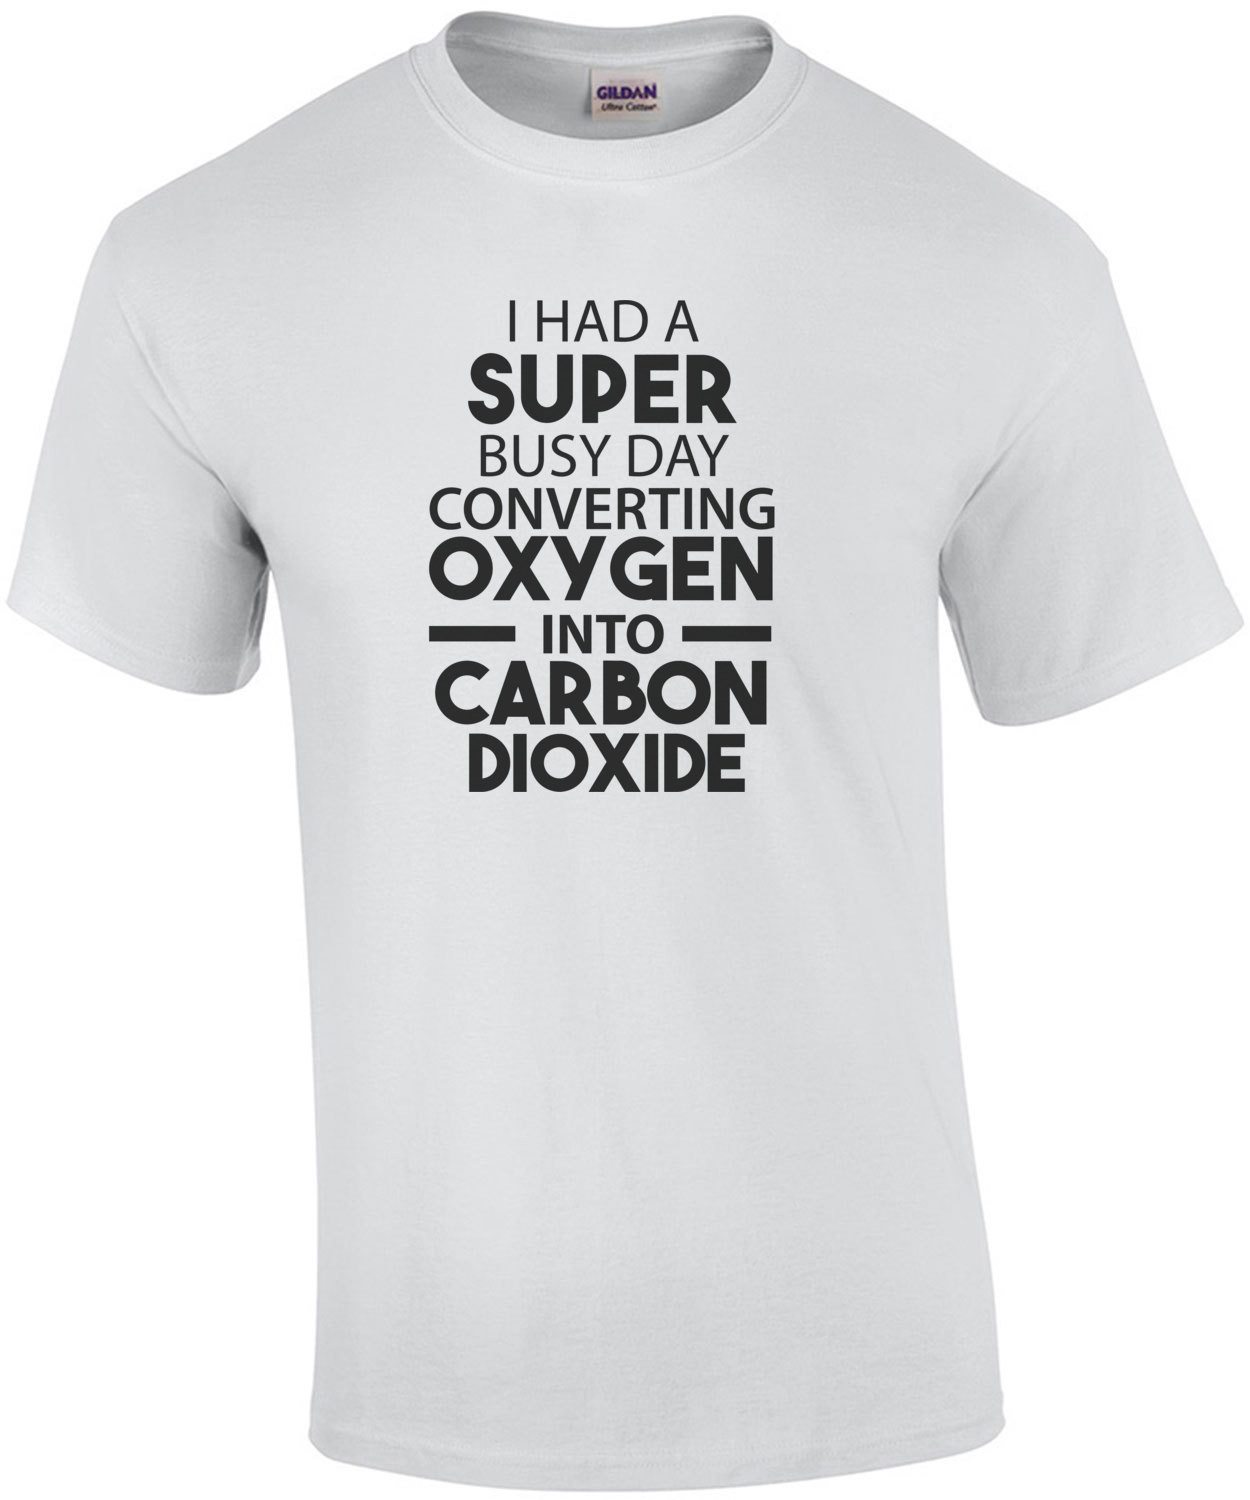 I had a super busy day converting oxygen into carbon dioxide - sarcastic t-shirt